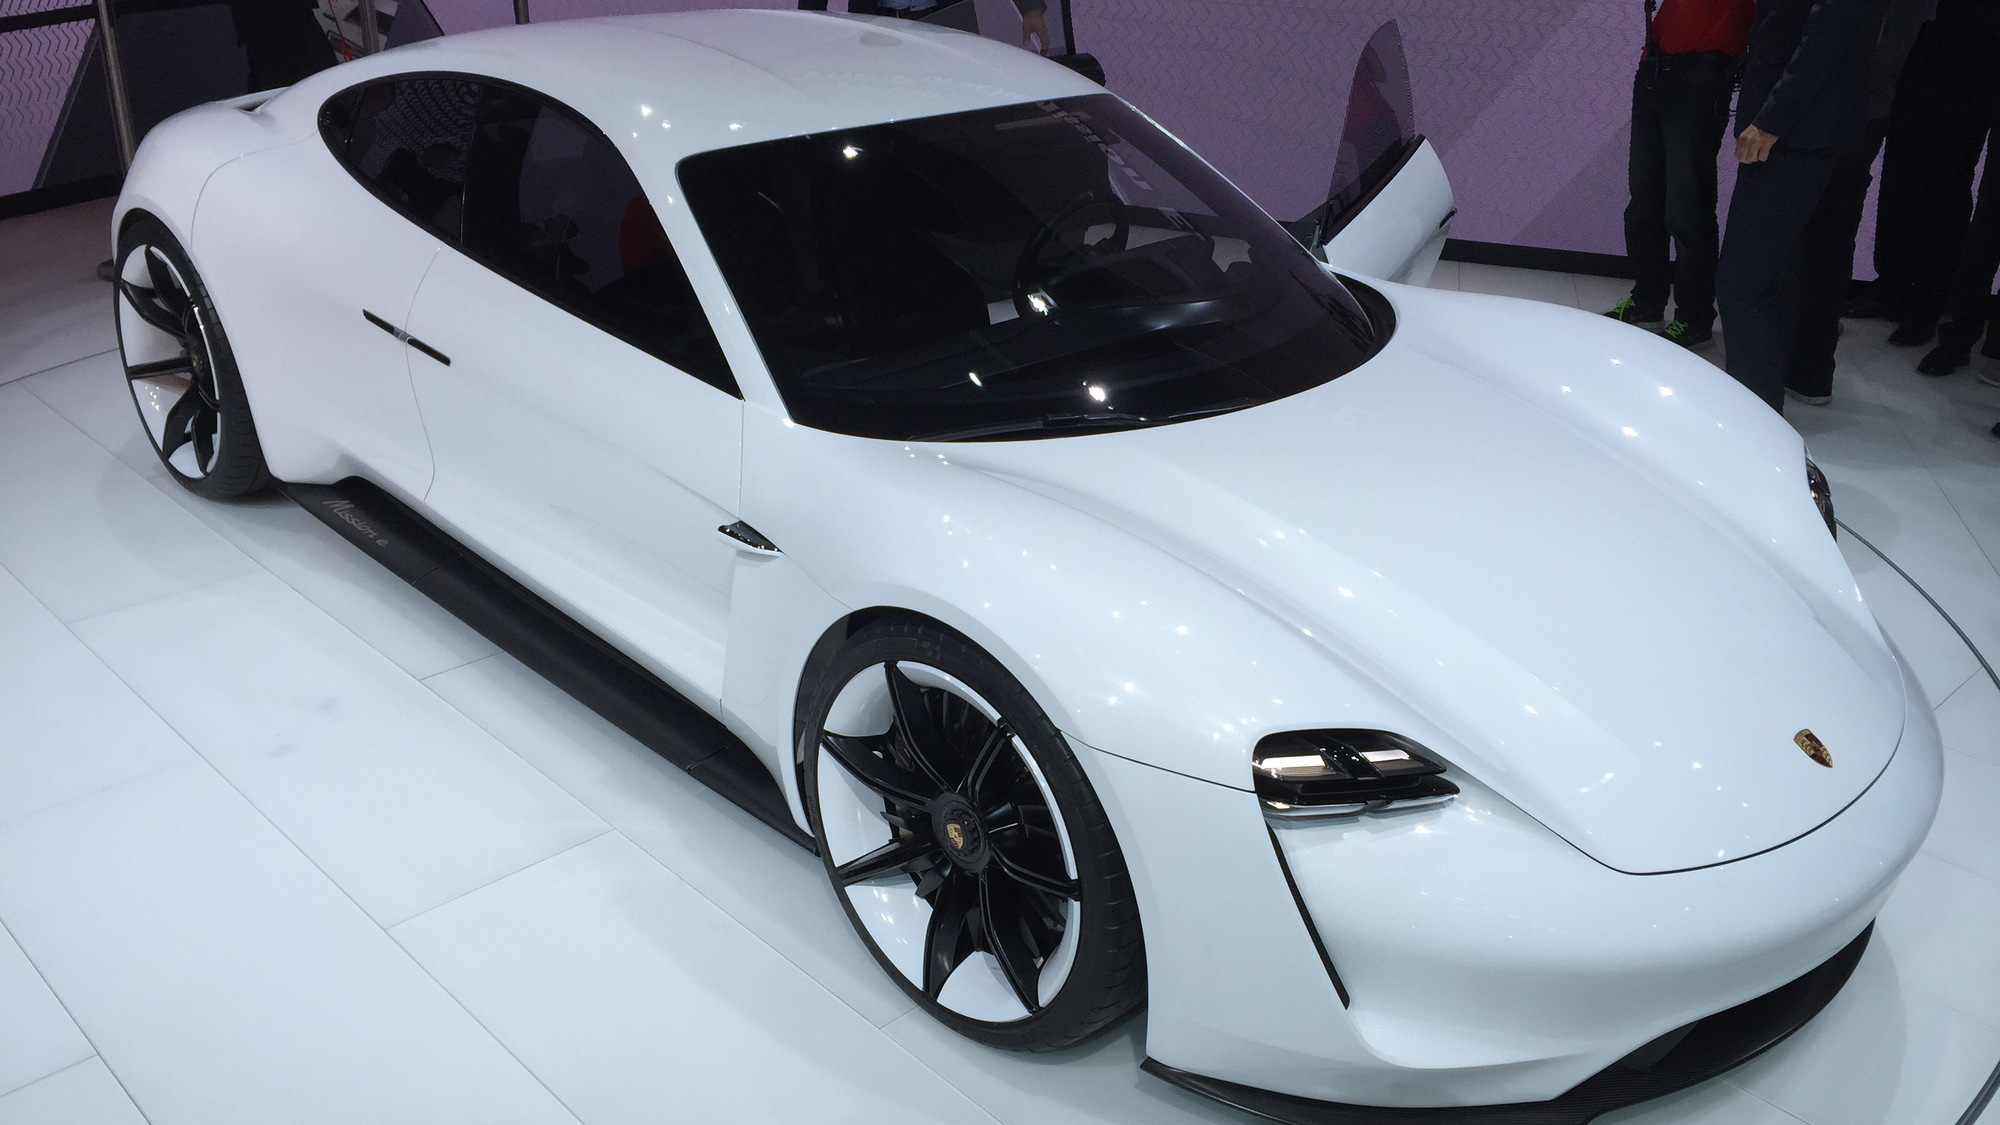 2018 Porsche Mission E: 600-HP Electric Sport Sedan Concept